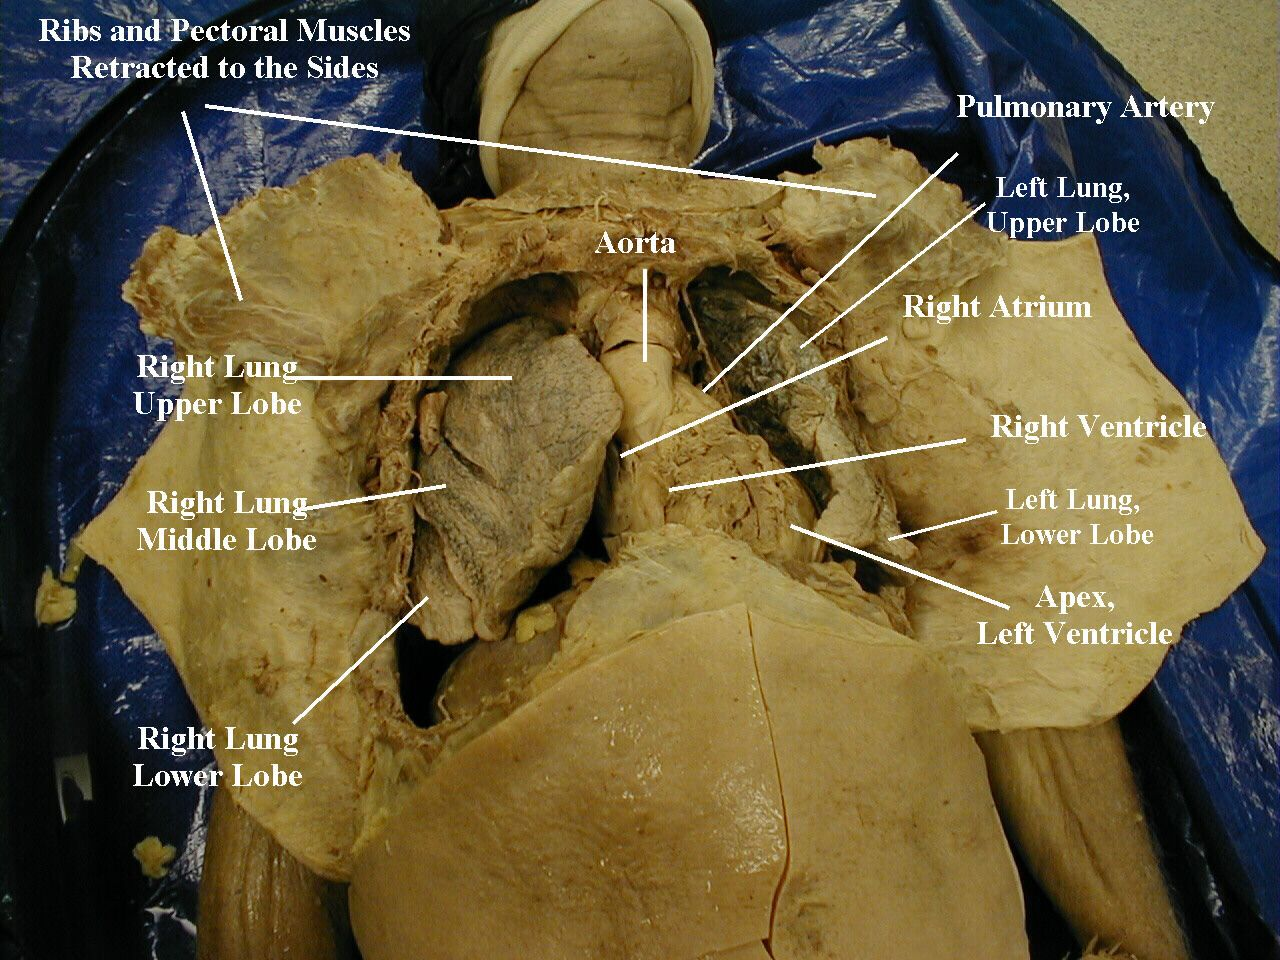 dissection of cadaver at medical school. Note that the body does not ...